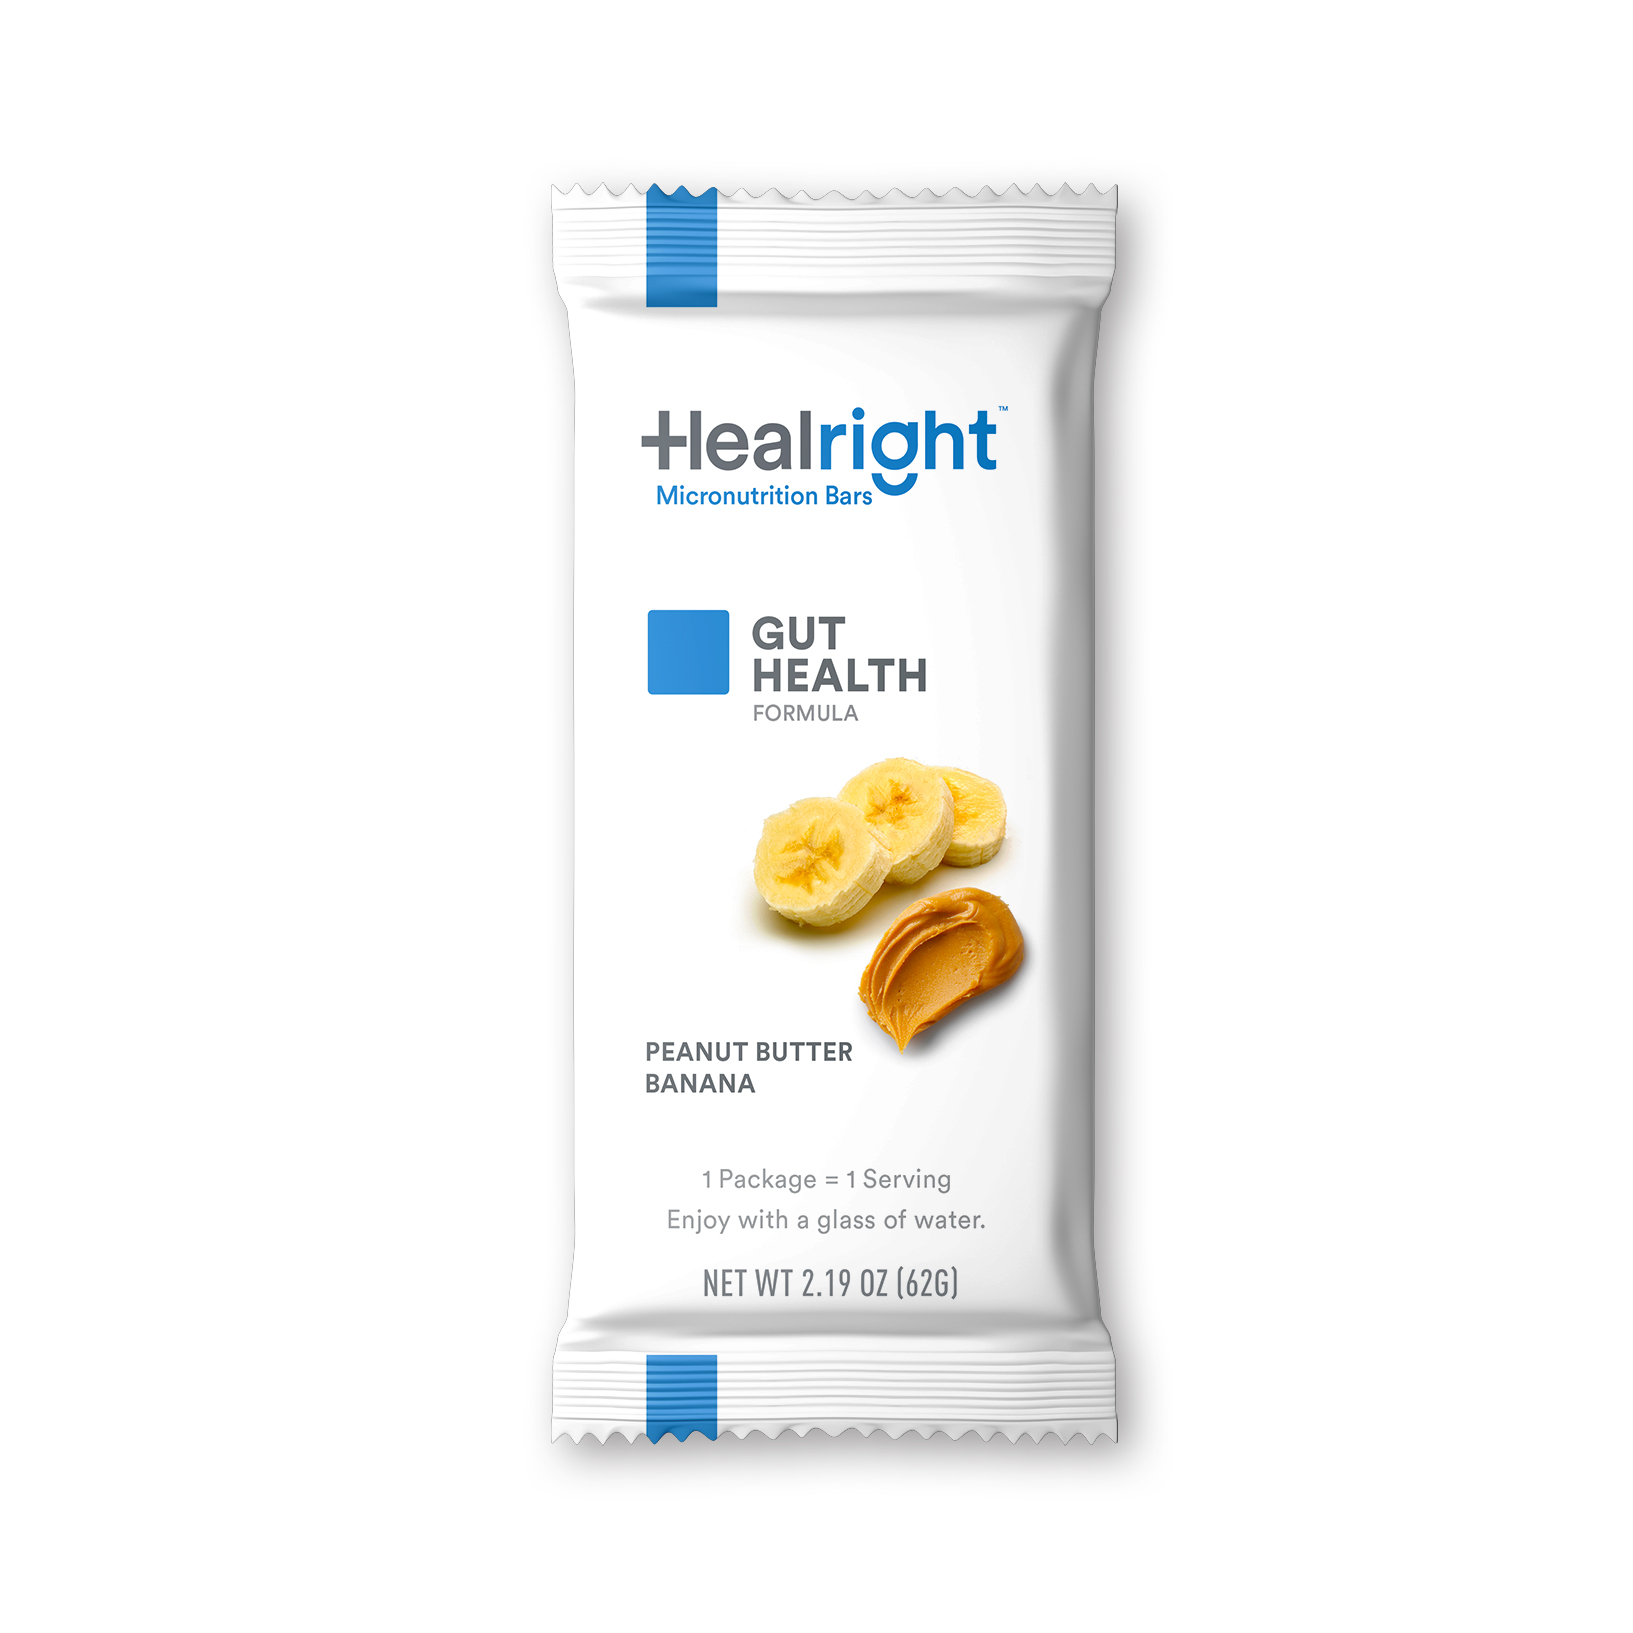 Healright Try with Peanut Butter & Banana flavor